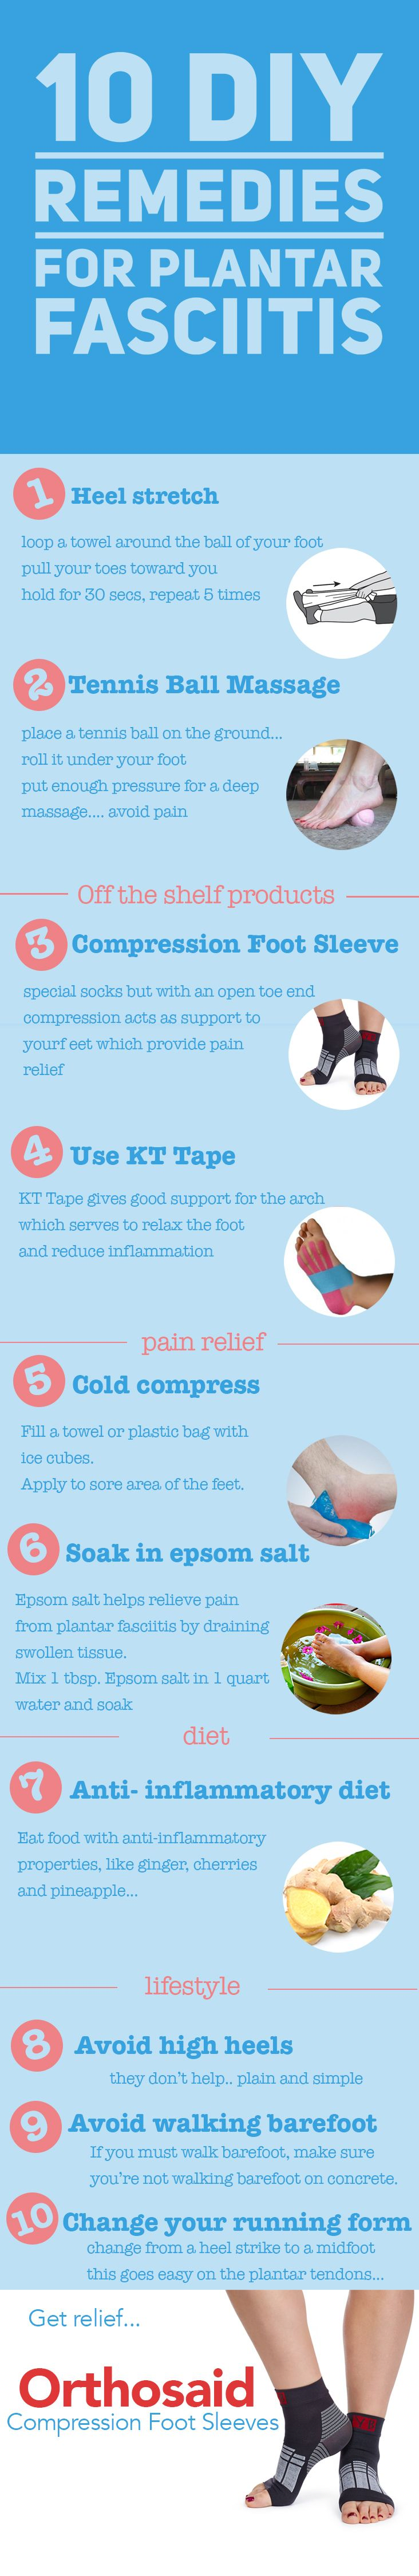 Plantar fasciitis treatment : Discover 10 DIY exercises you can do on your own. They include stretches and massages that help with heel and arch pain relief. Do these to complement your shoes and sandals.   Also, these sleeves help a lot http://www.amazon.com/Orthosaid-Compression-Yorkberg-Plantar-Fasciitis/dp/B00VEB2F9I/?ie=UTF8&keywords=compression+foot+sleeve